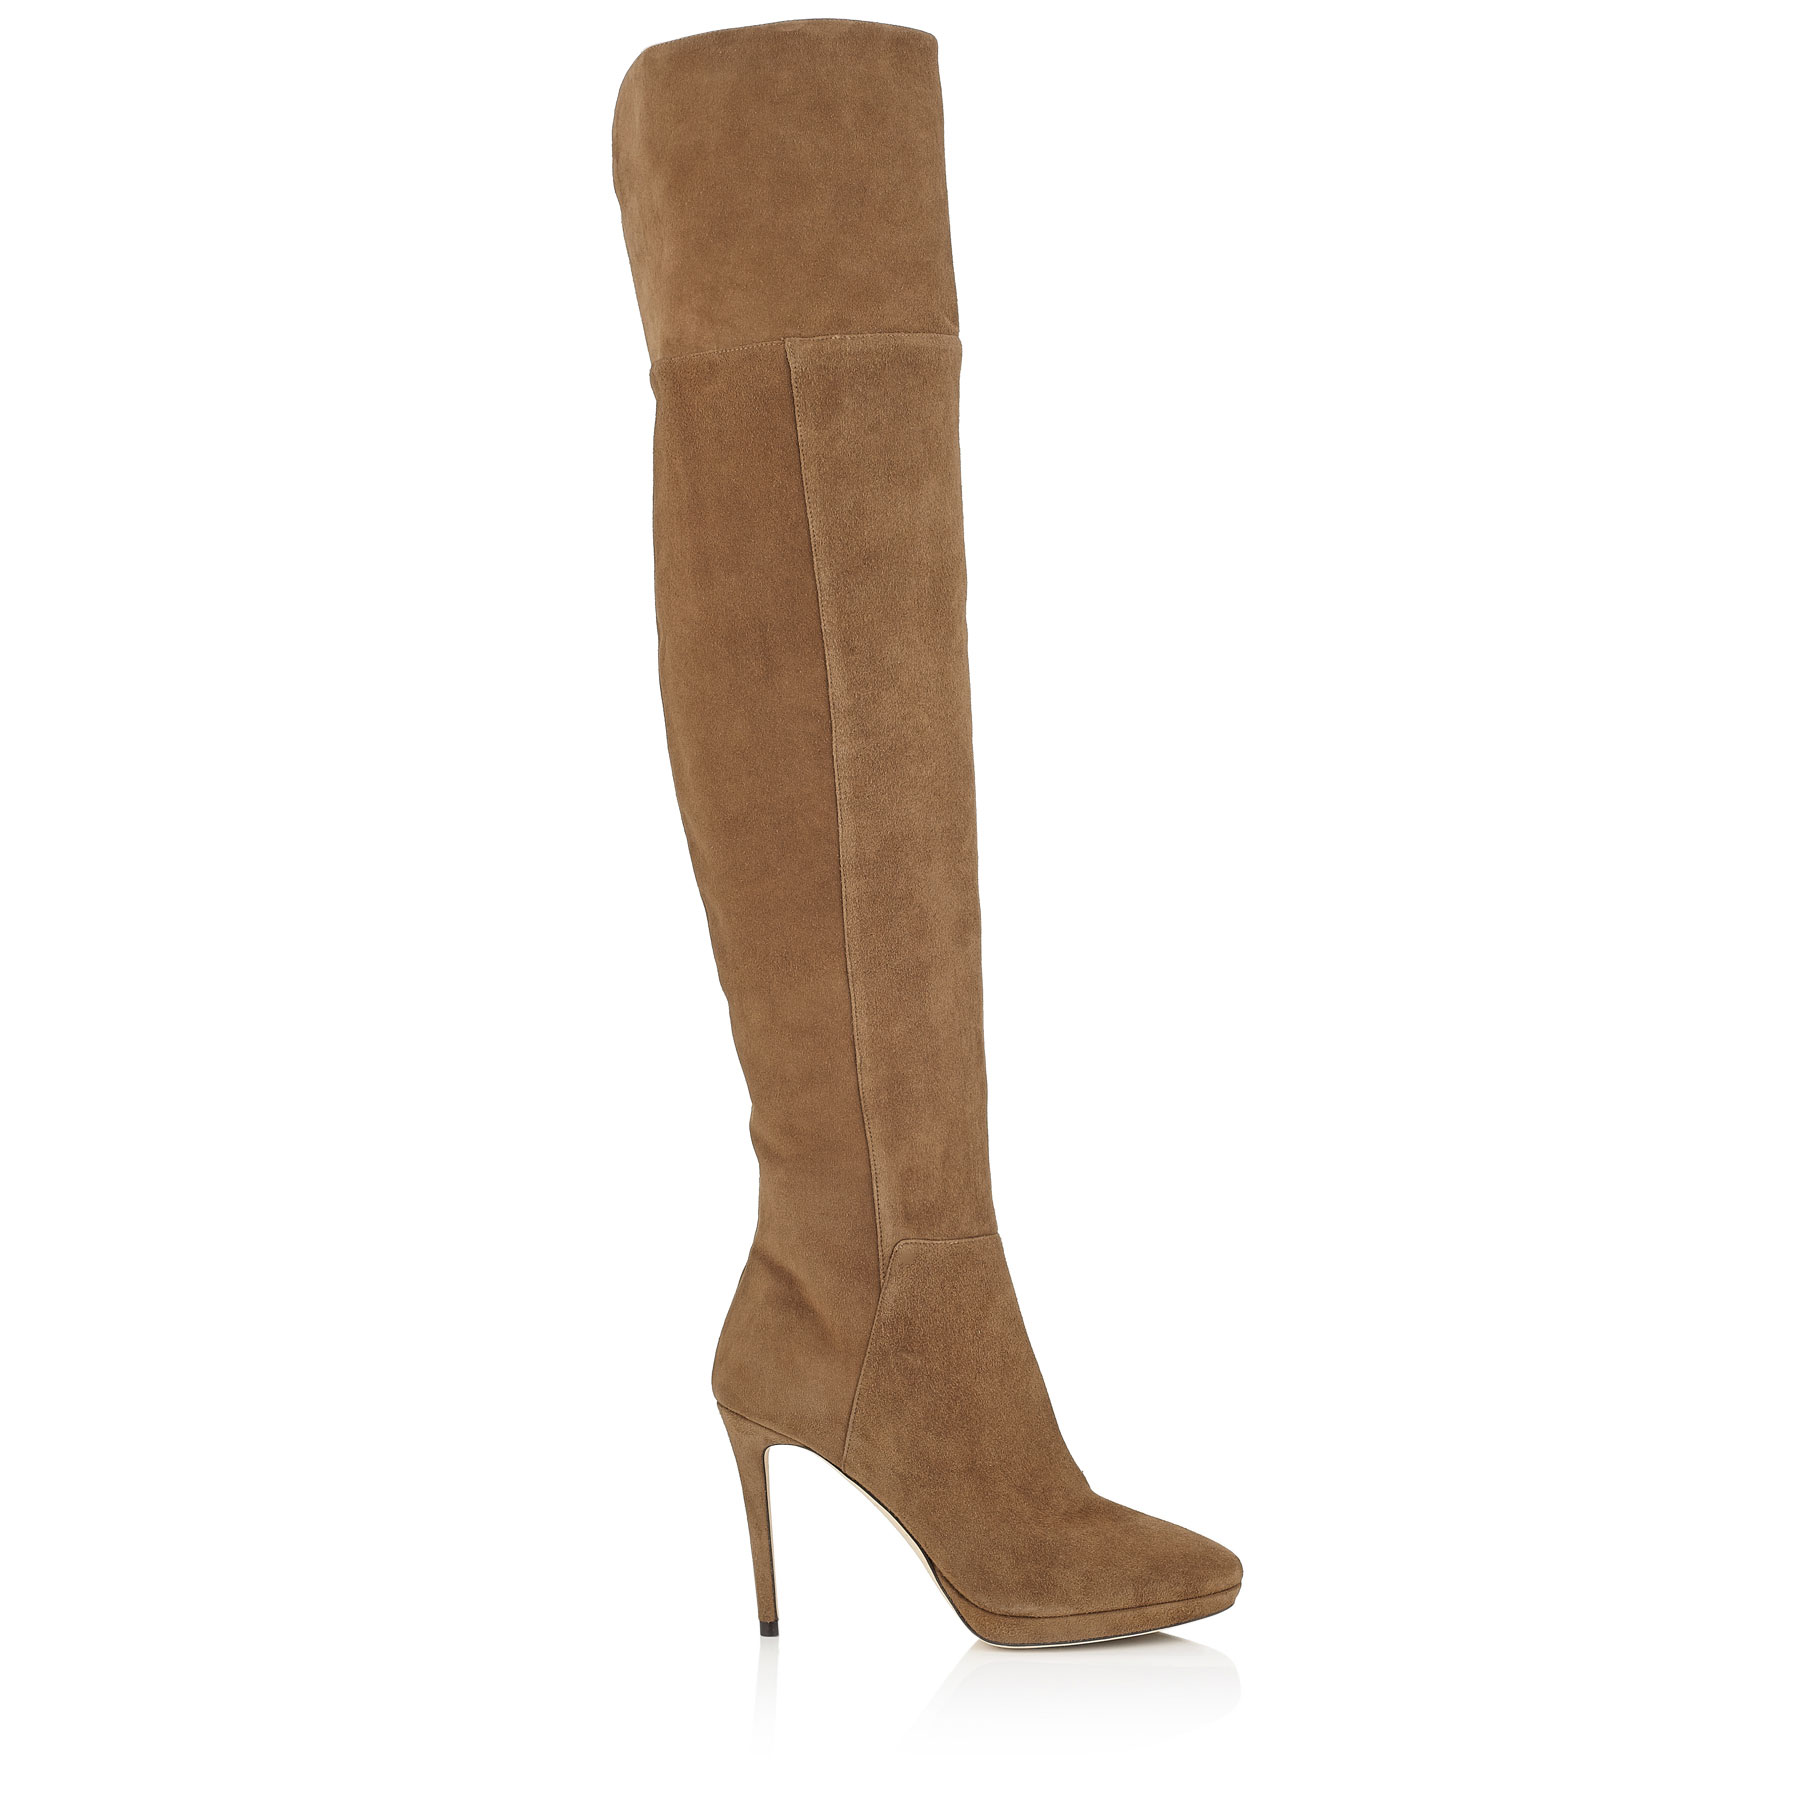 HAYLEY 100 Khaki Brown Suede Over-The-Knee Boots